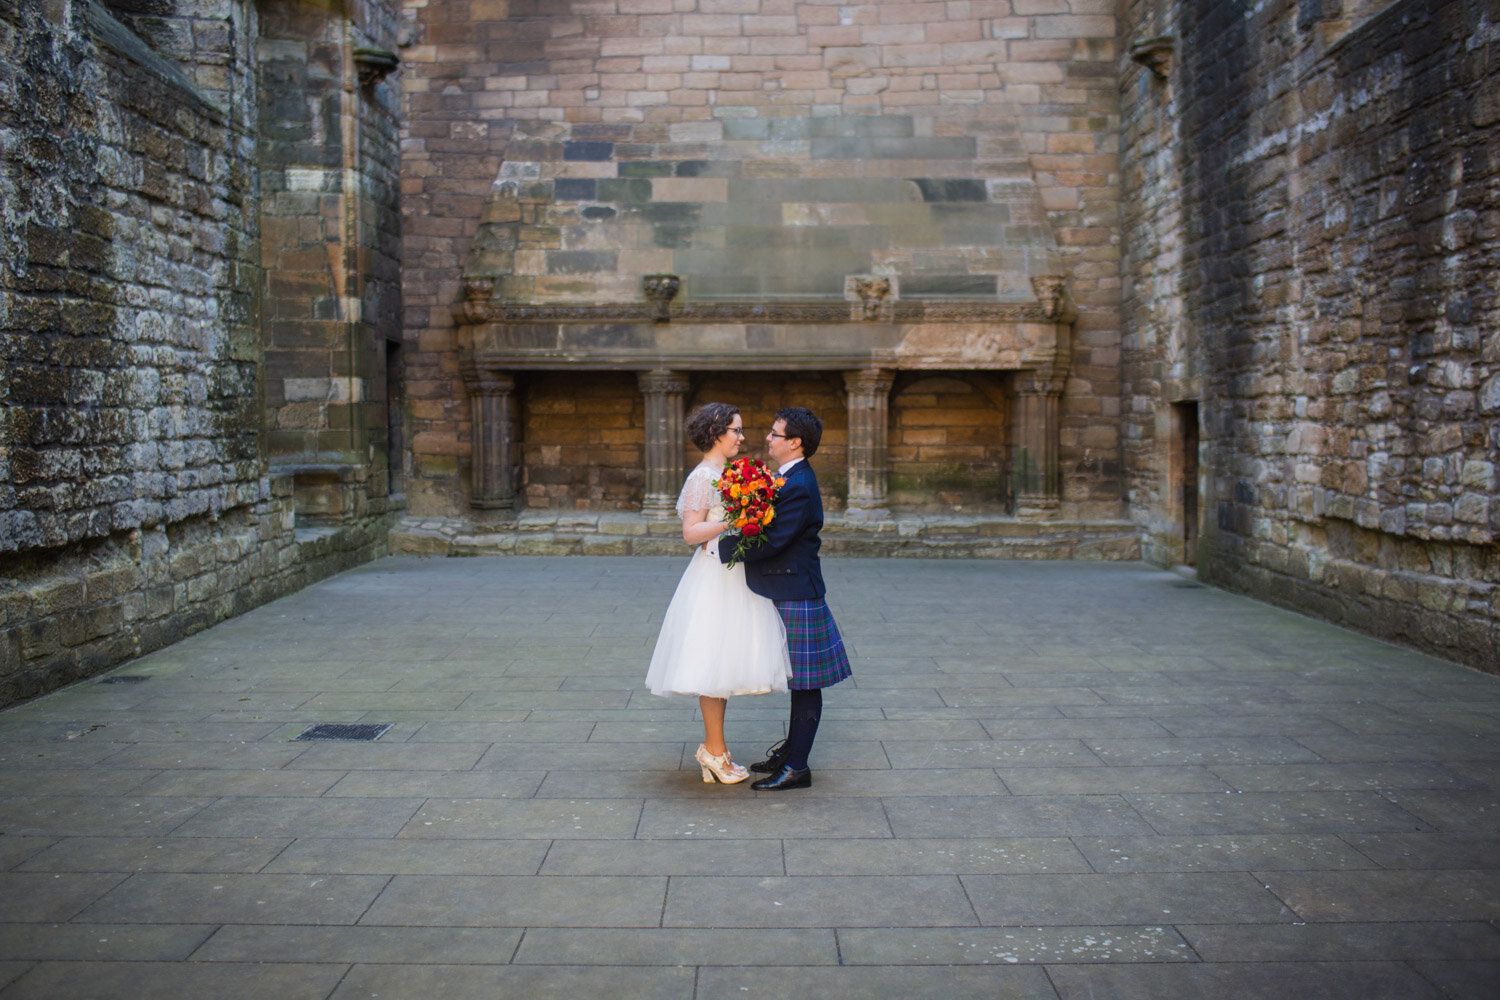 Victoria and Charlie's wedding preview-20.jpg